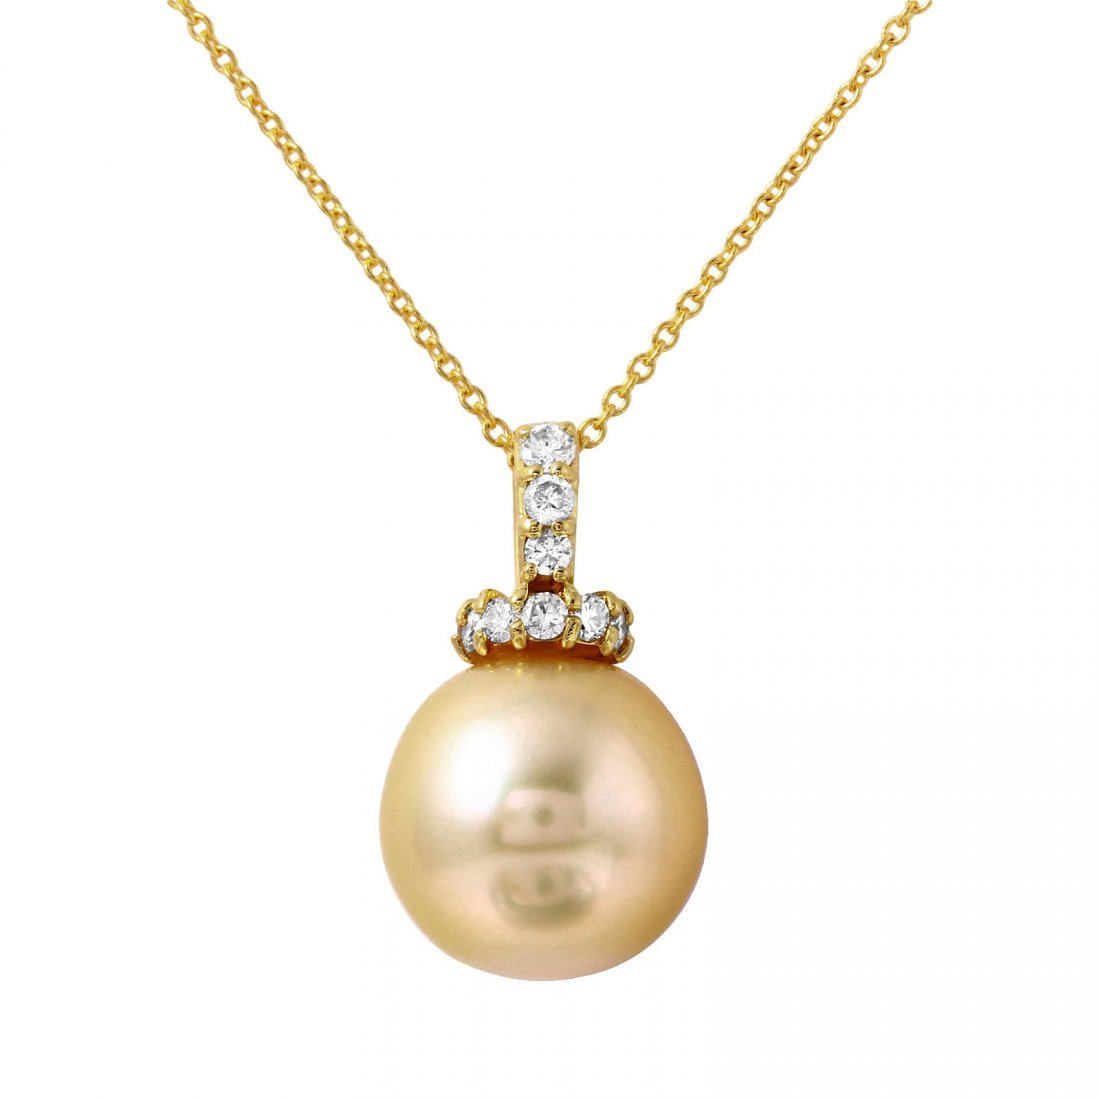 14-18KT Yellow Gold Pearl and Diamond Pendant and Chain